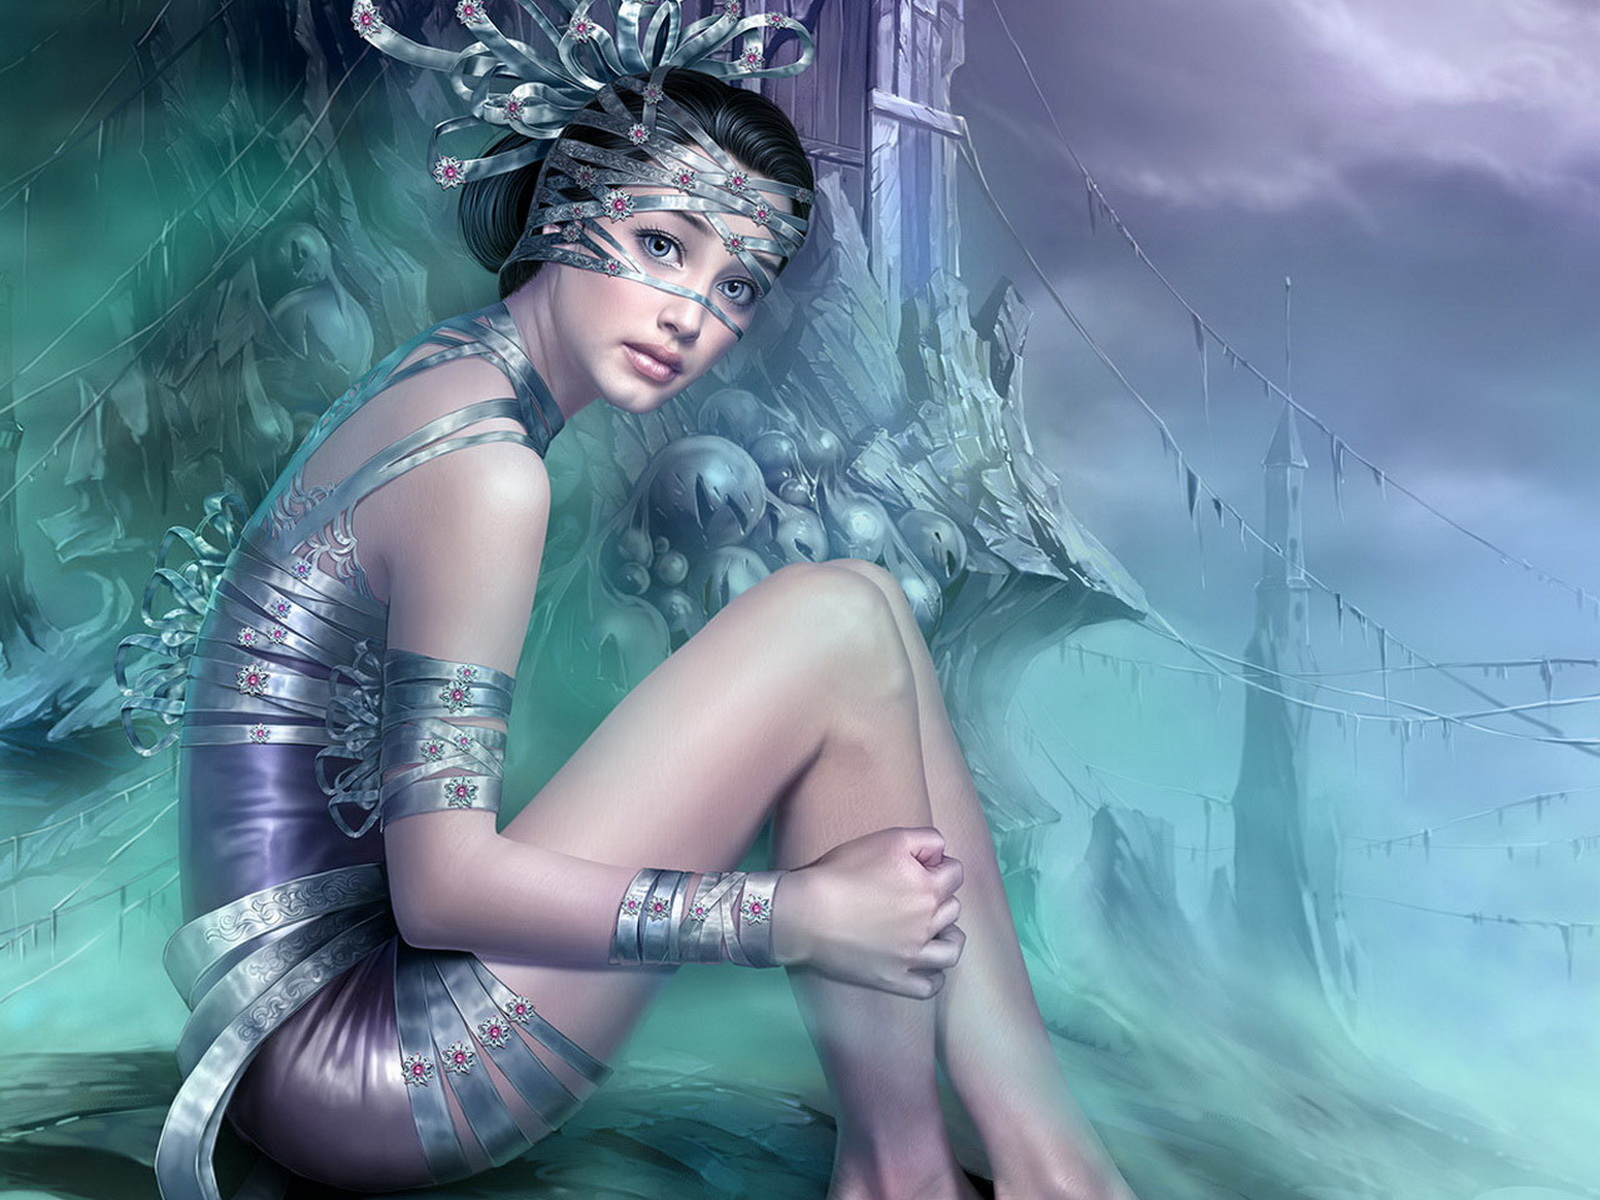 wallpapers fantasia mujeres